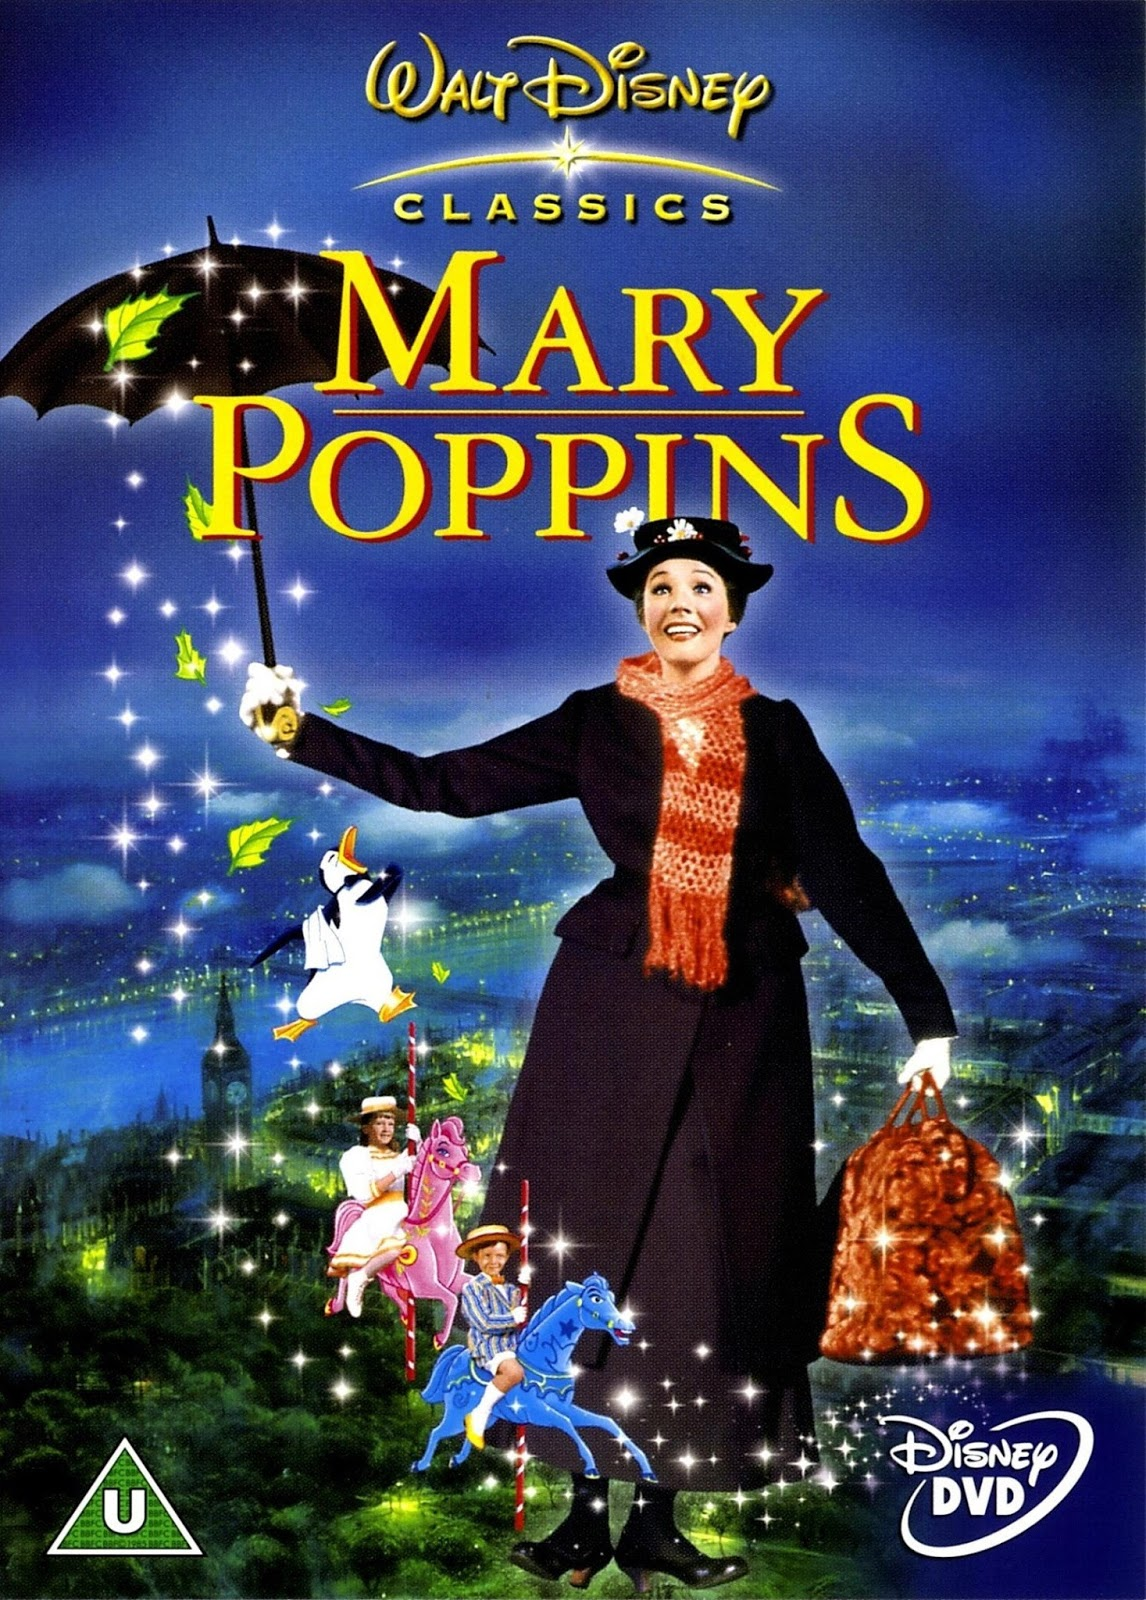 Fairmont blog a to z 10 classic movies to share with - Mary poppins wallpaper ...